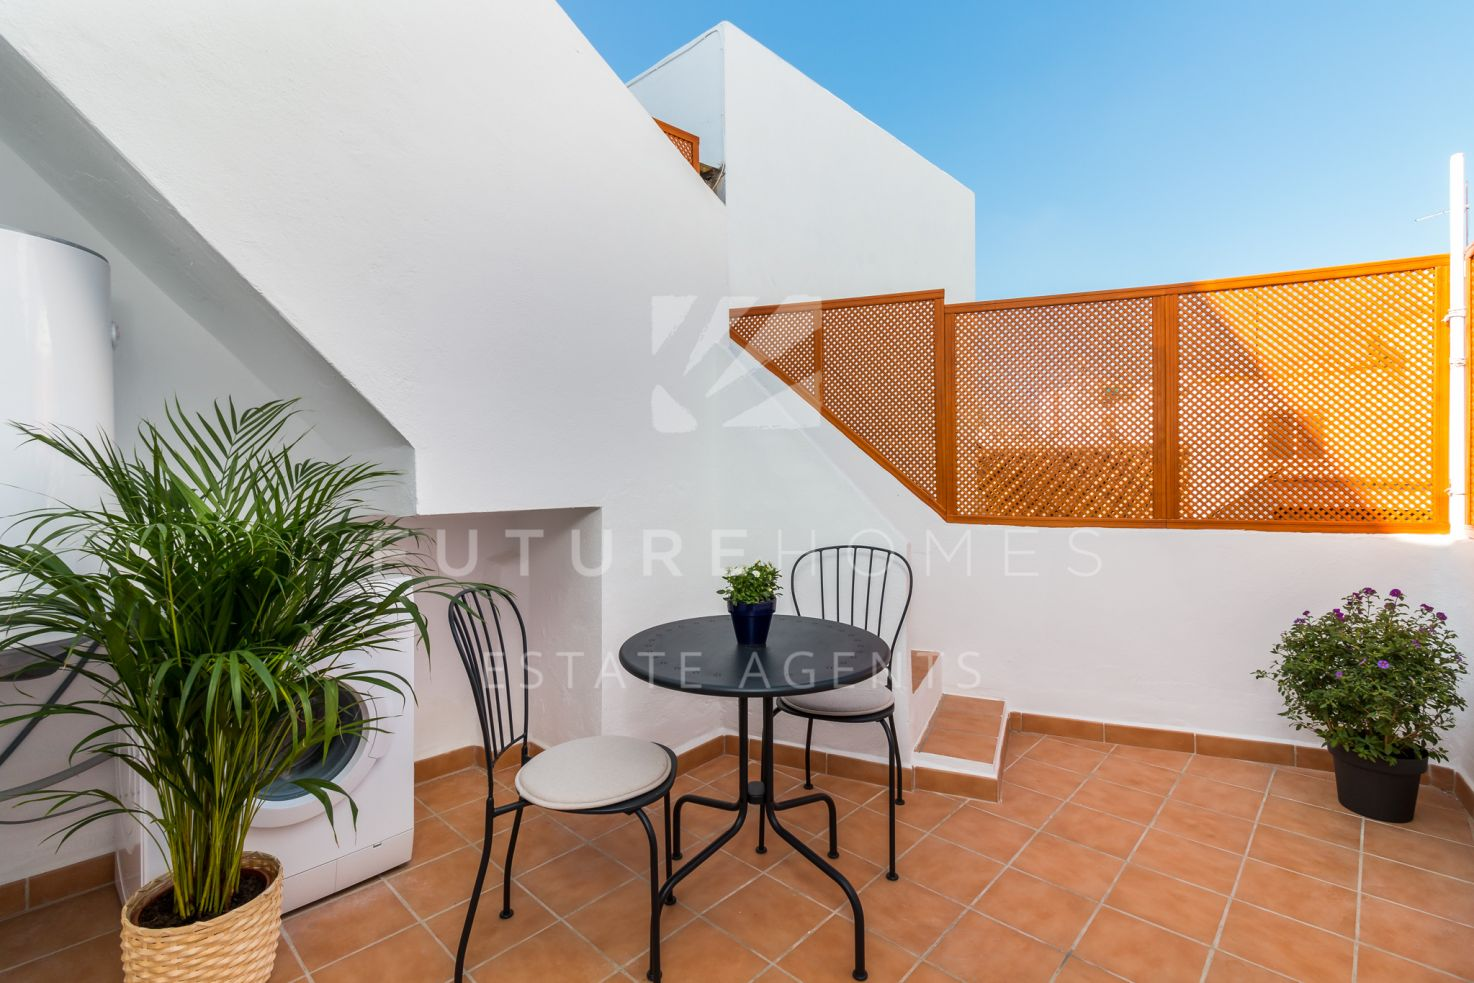 Fully renovated townhouse in Estepona old town with superb private terrace